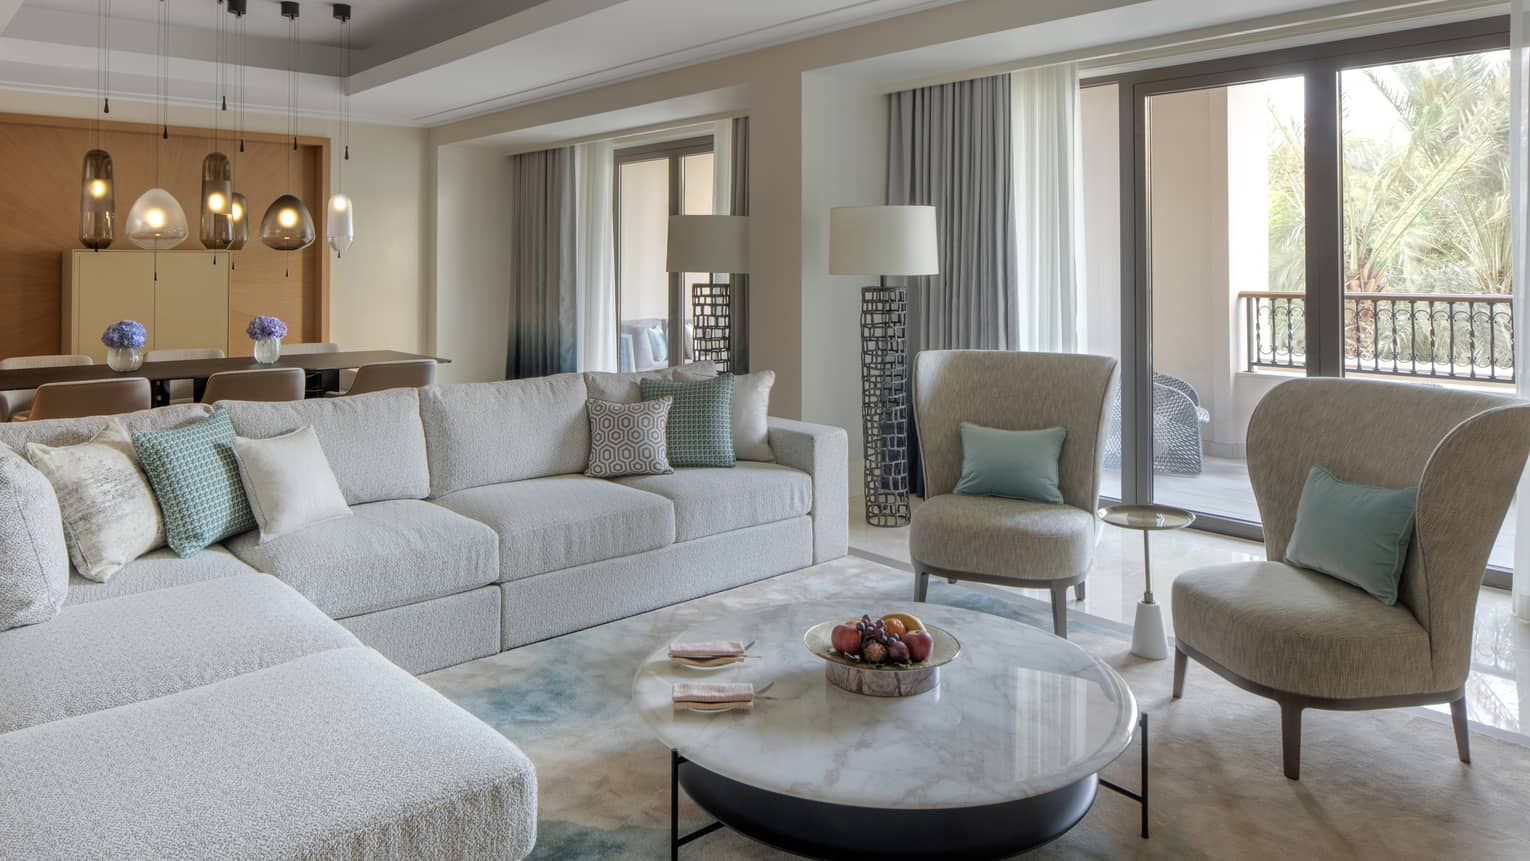 Living room with light beige sectional sofa, two cushioned chairs, round coffee table, balcony